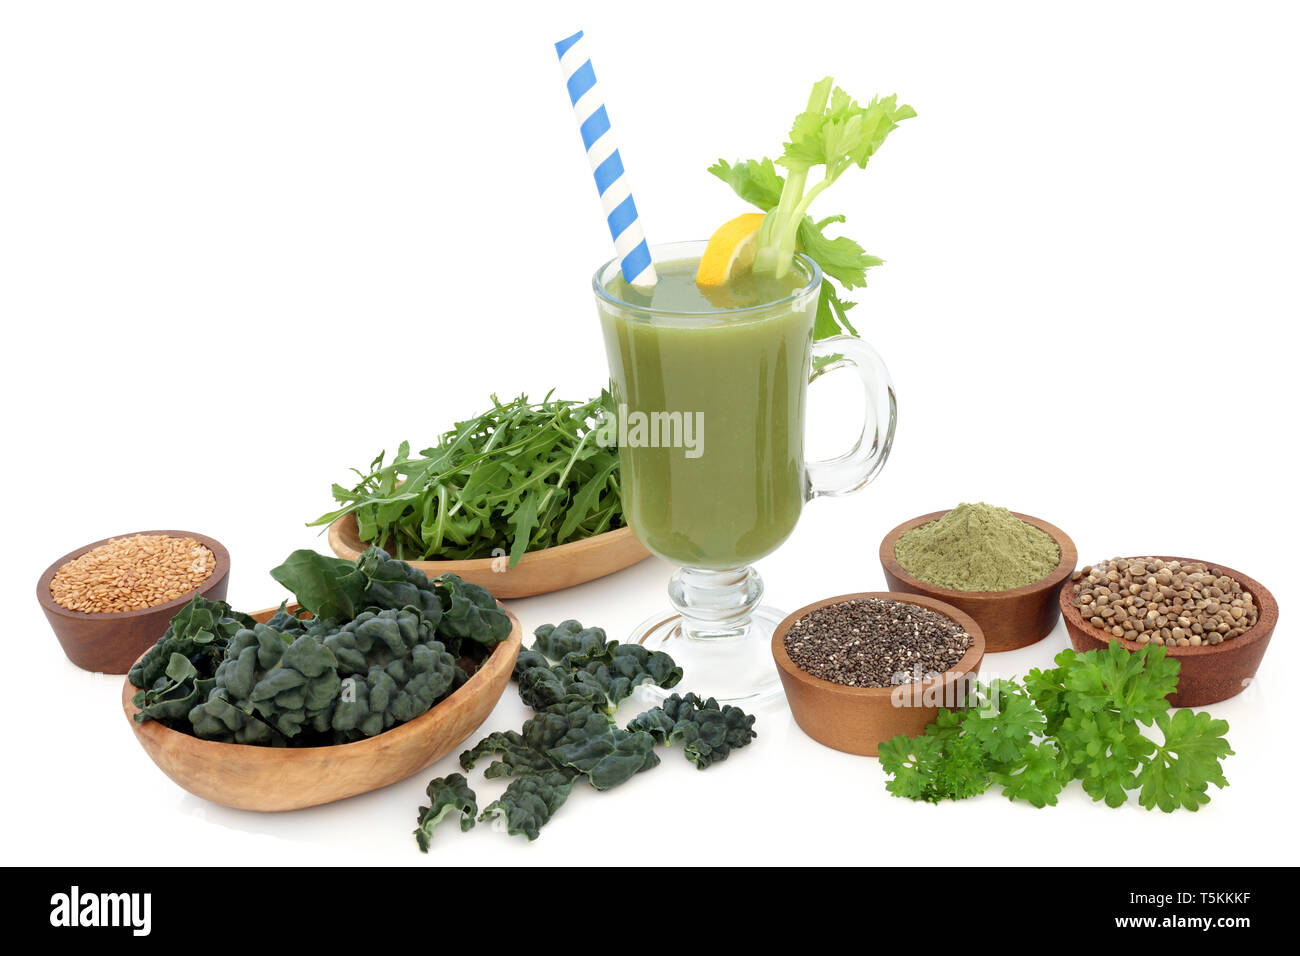 Super Food Health Drink With Vegetables Wheat Grass Powder Chia Flax And Hemp Seeds Health Foods High In Antioxidants Vitamins Dietary Fibre Stock Photo Alamy